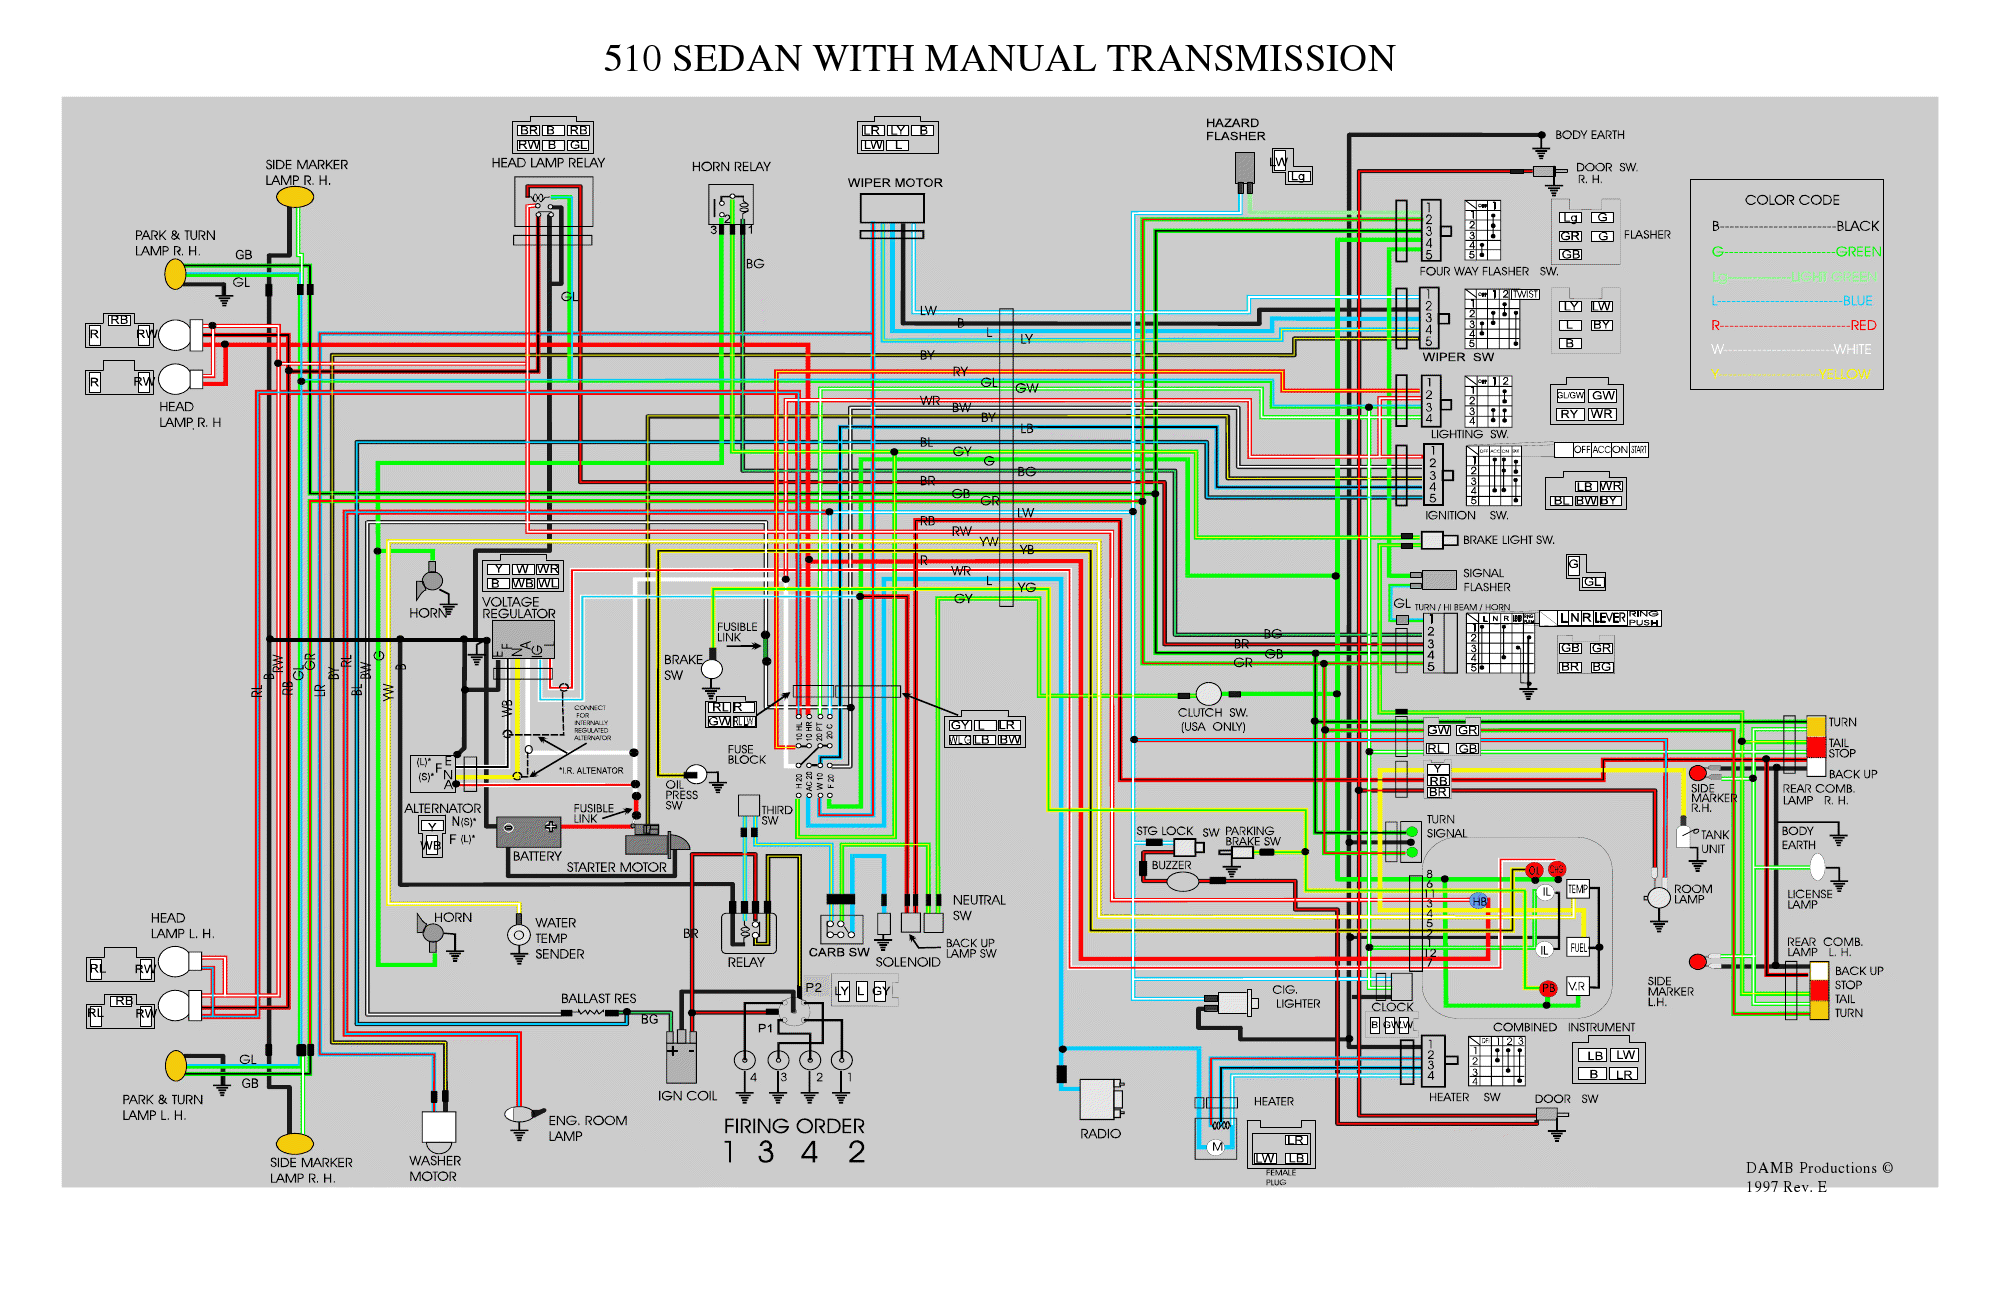 datsun_510_wiring_diagram datsun 720 wiring diagram 1982 datsun 4x4 pickup \u2022 wiring diagrams  at webbmarketing.co